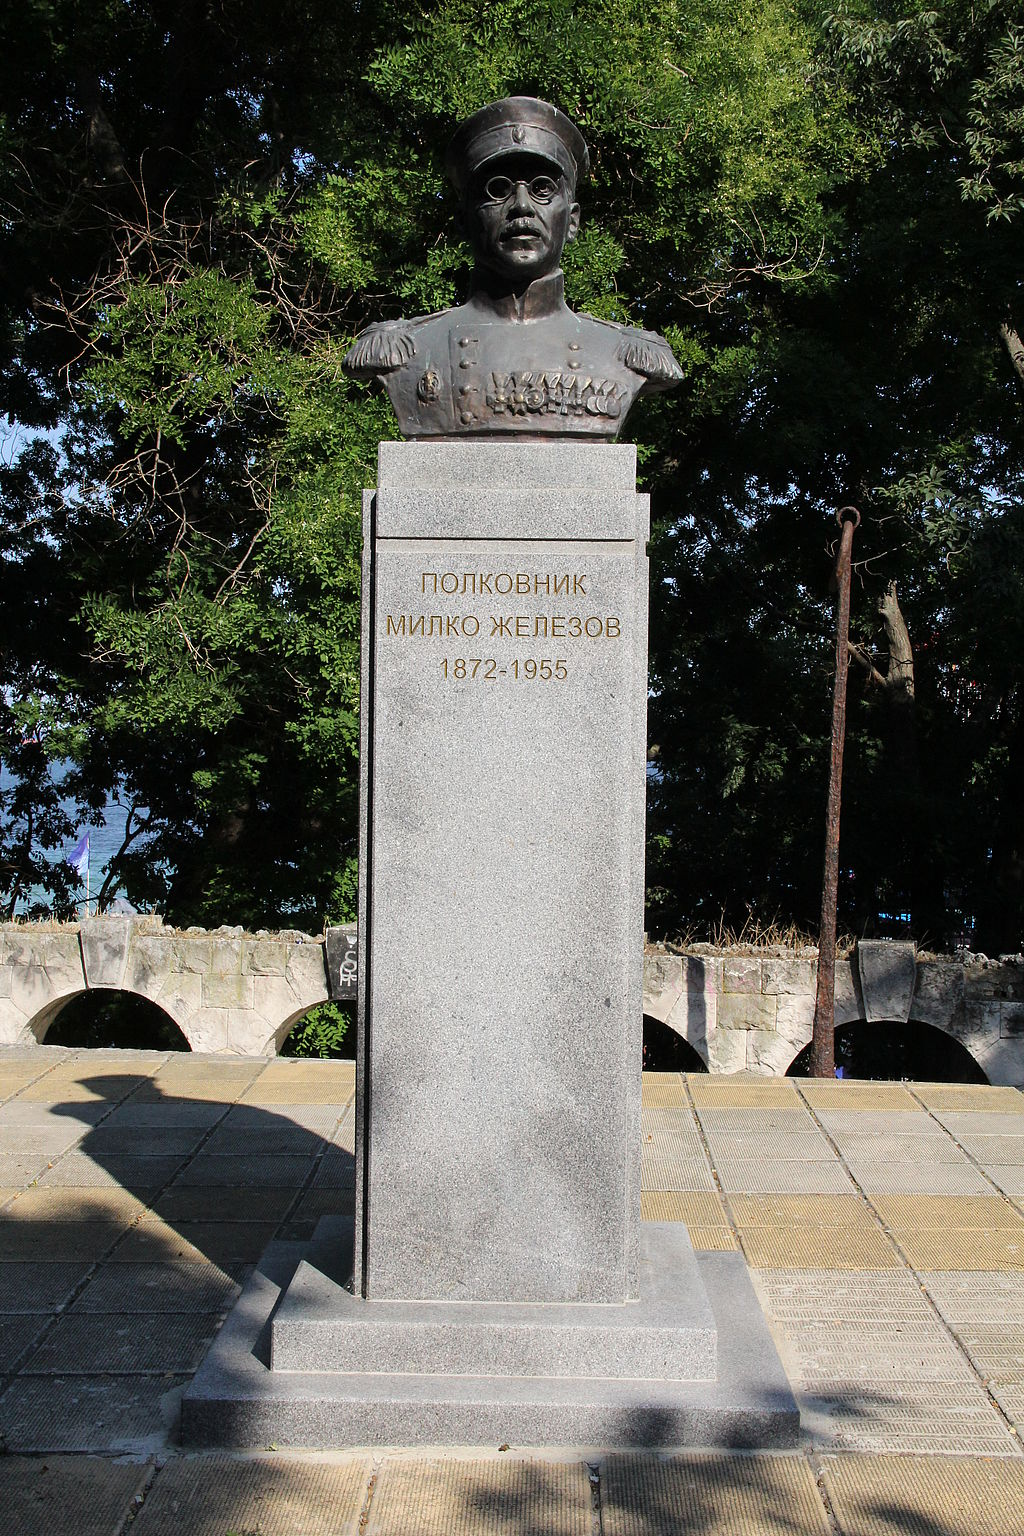 Monument of Colonel Milko Zhelezov in Varna, Bulgaria